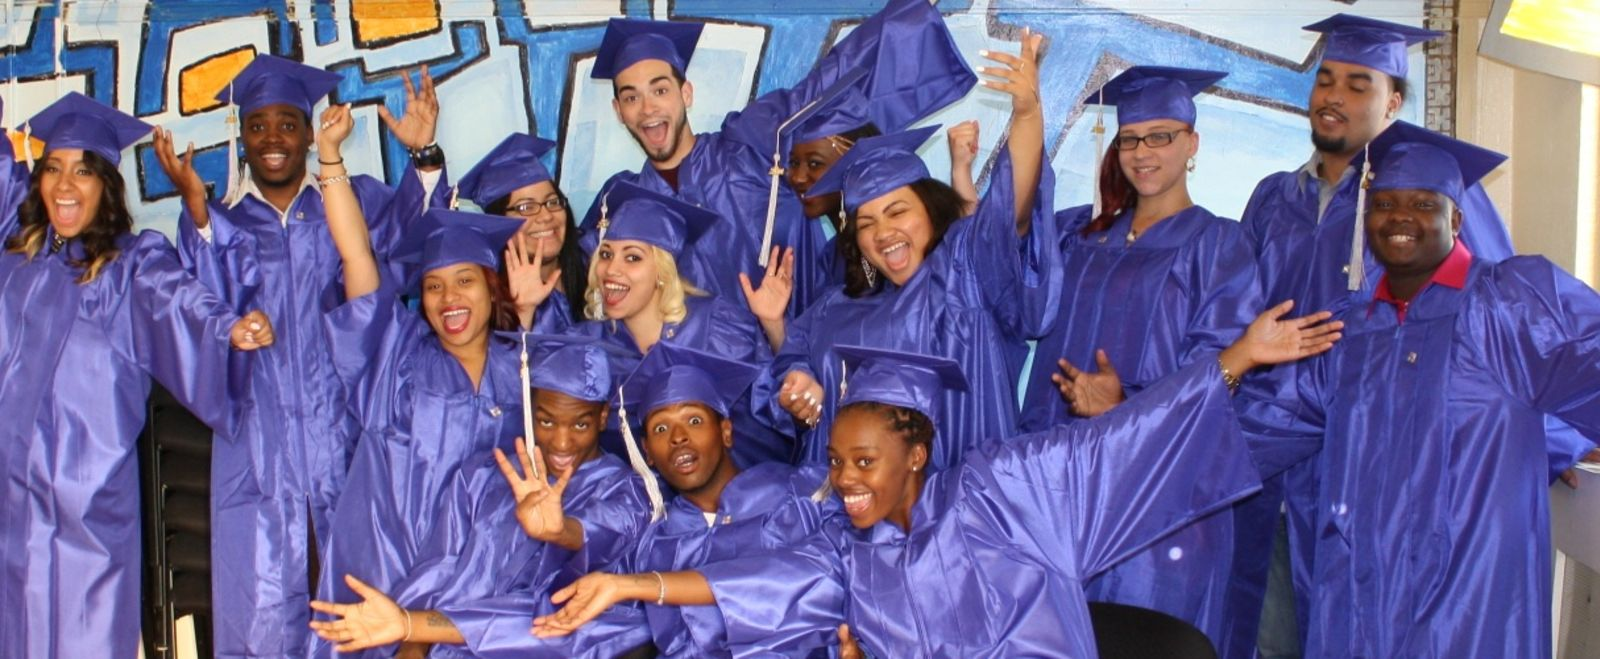 Students in their graduation poses smile and pose for the camera with goofy faces.